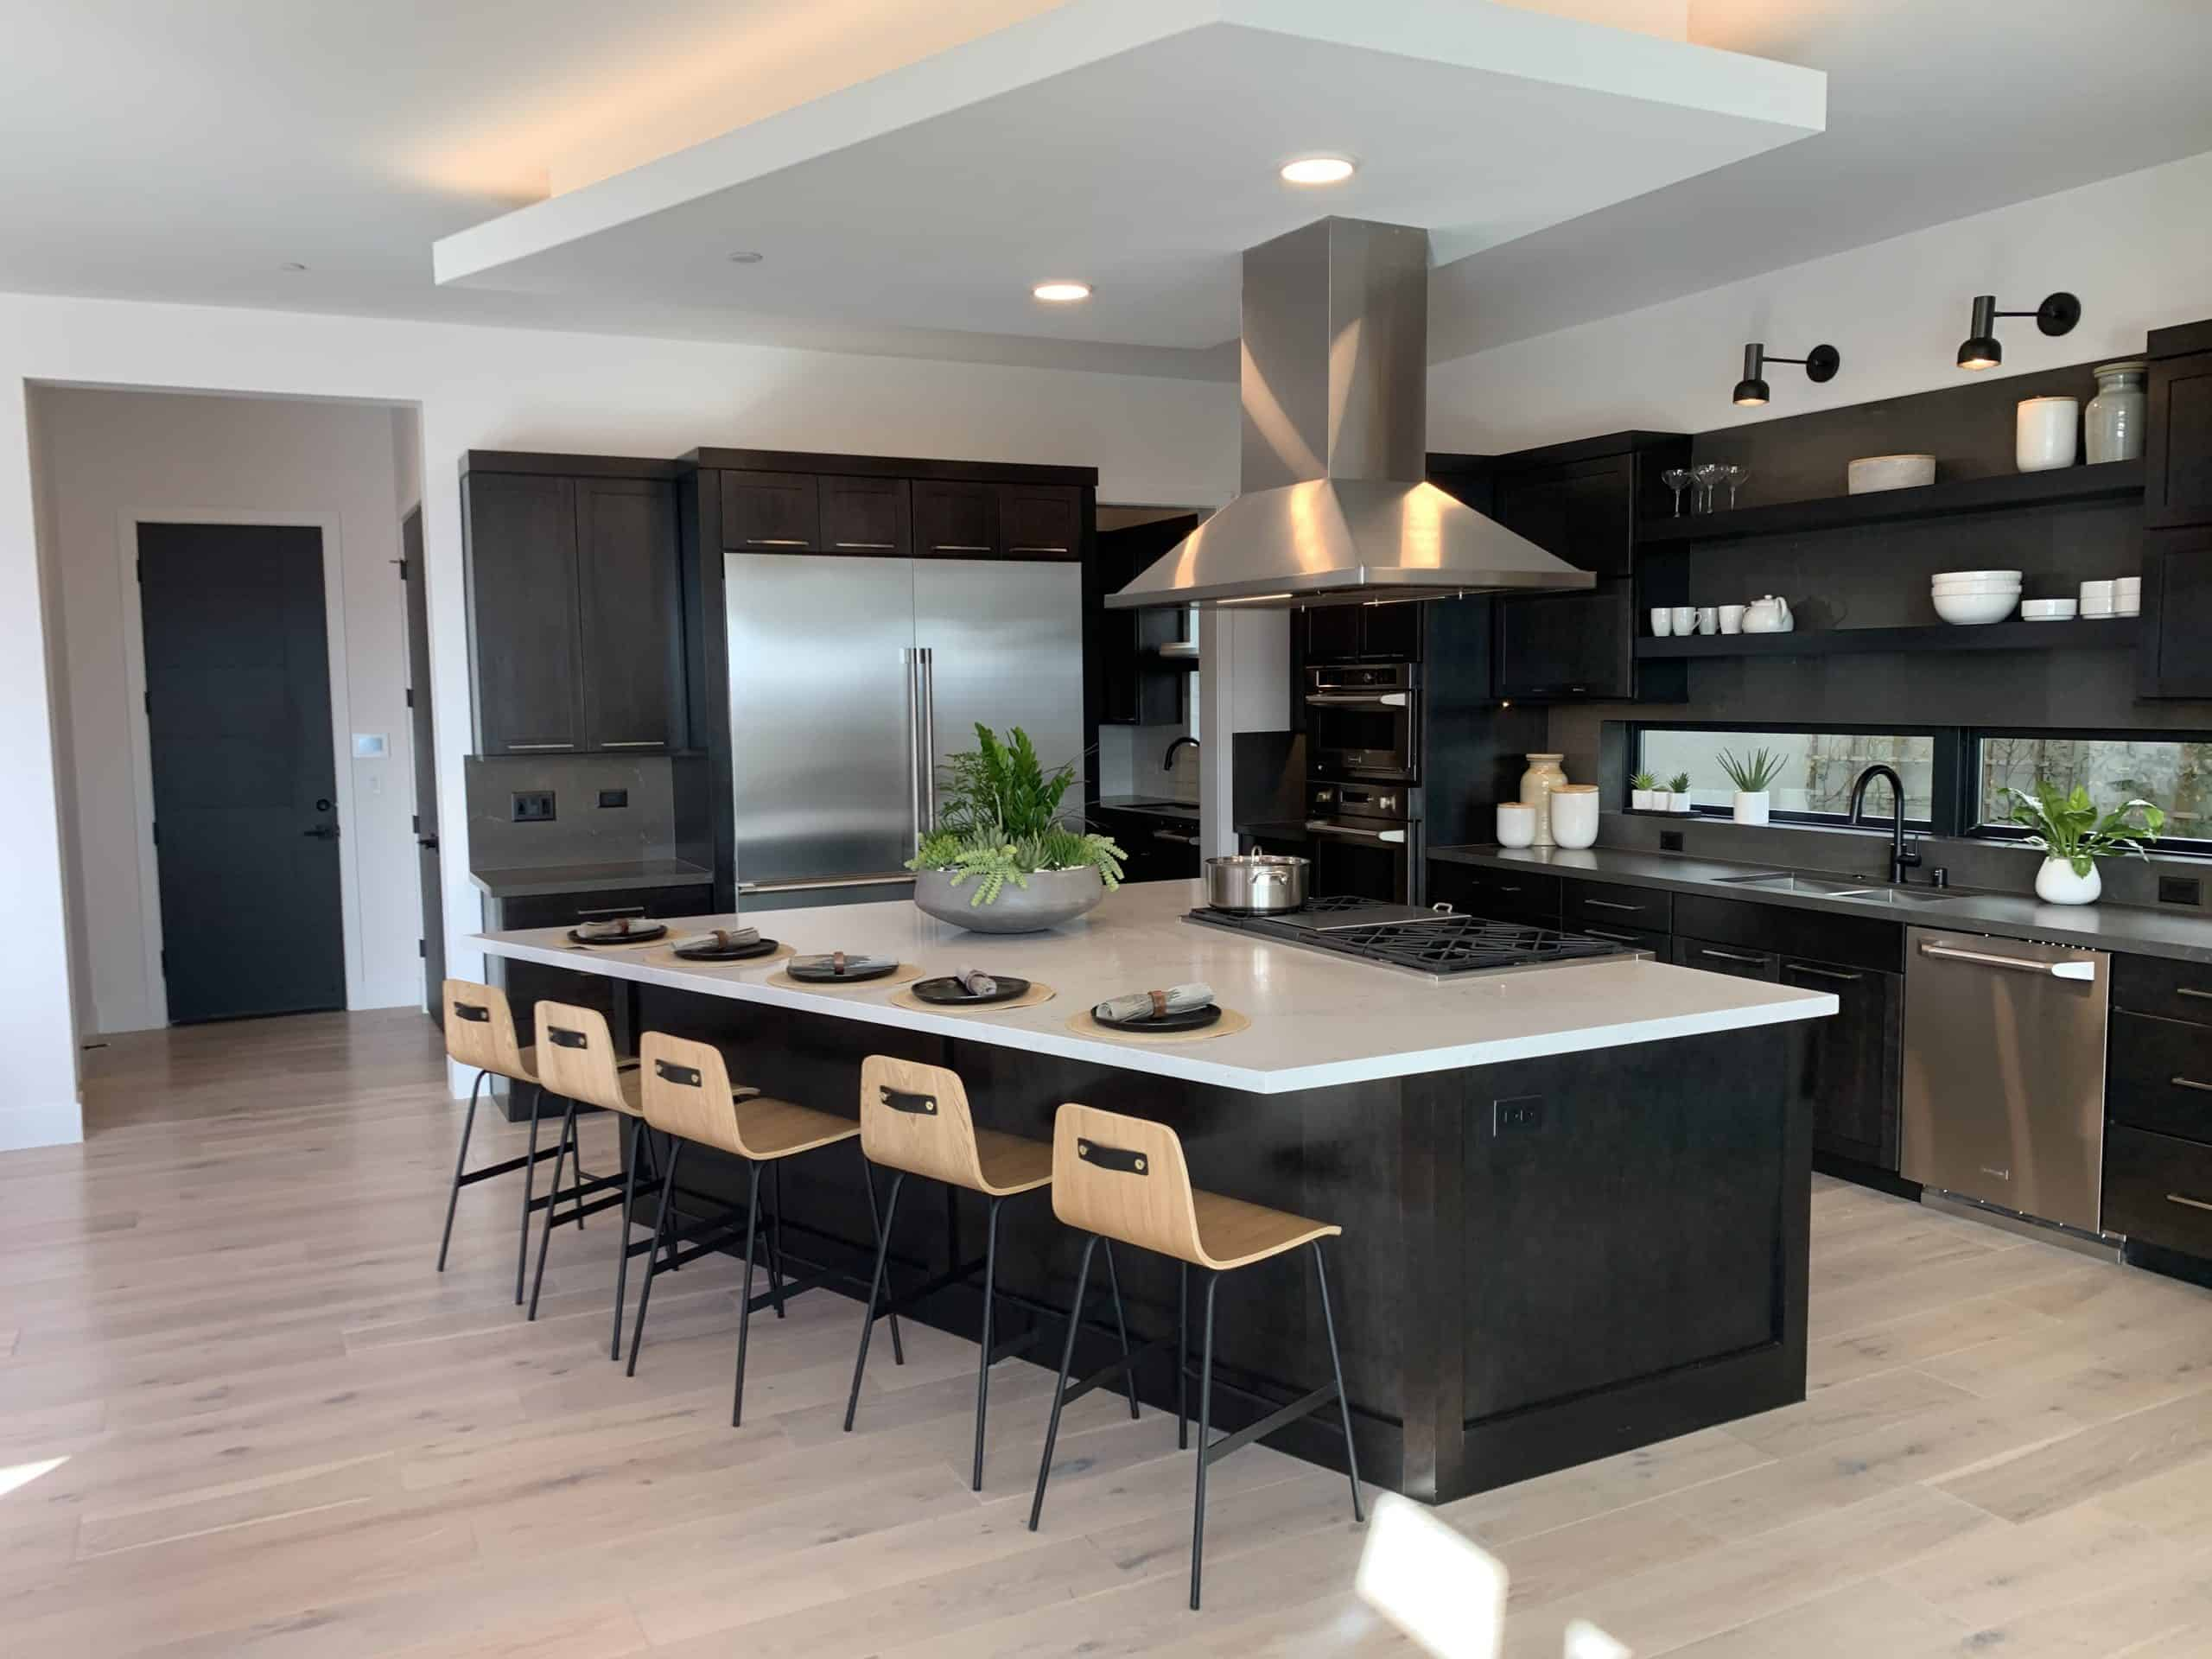 Plan-2-Pardee-Homes-Kitchen